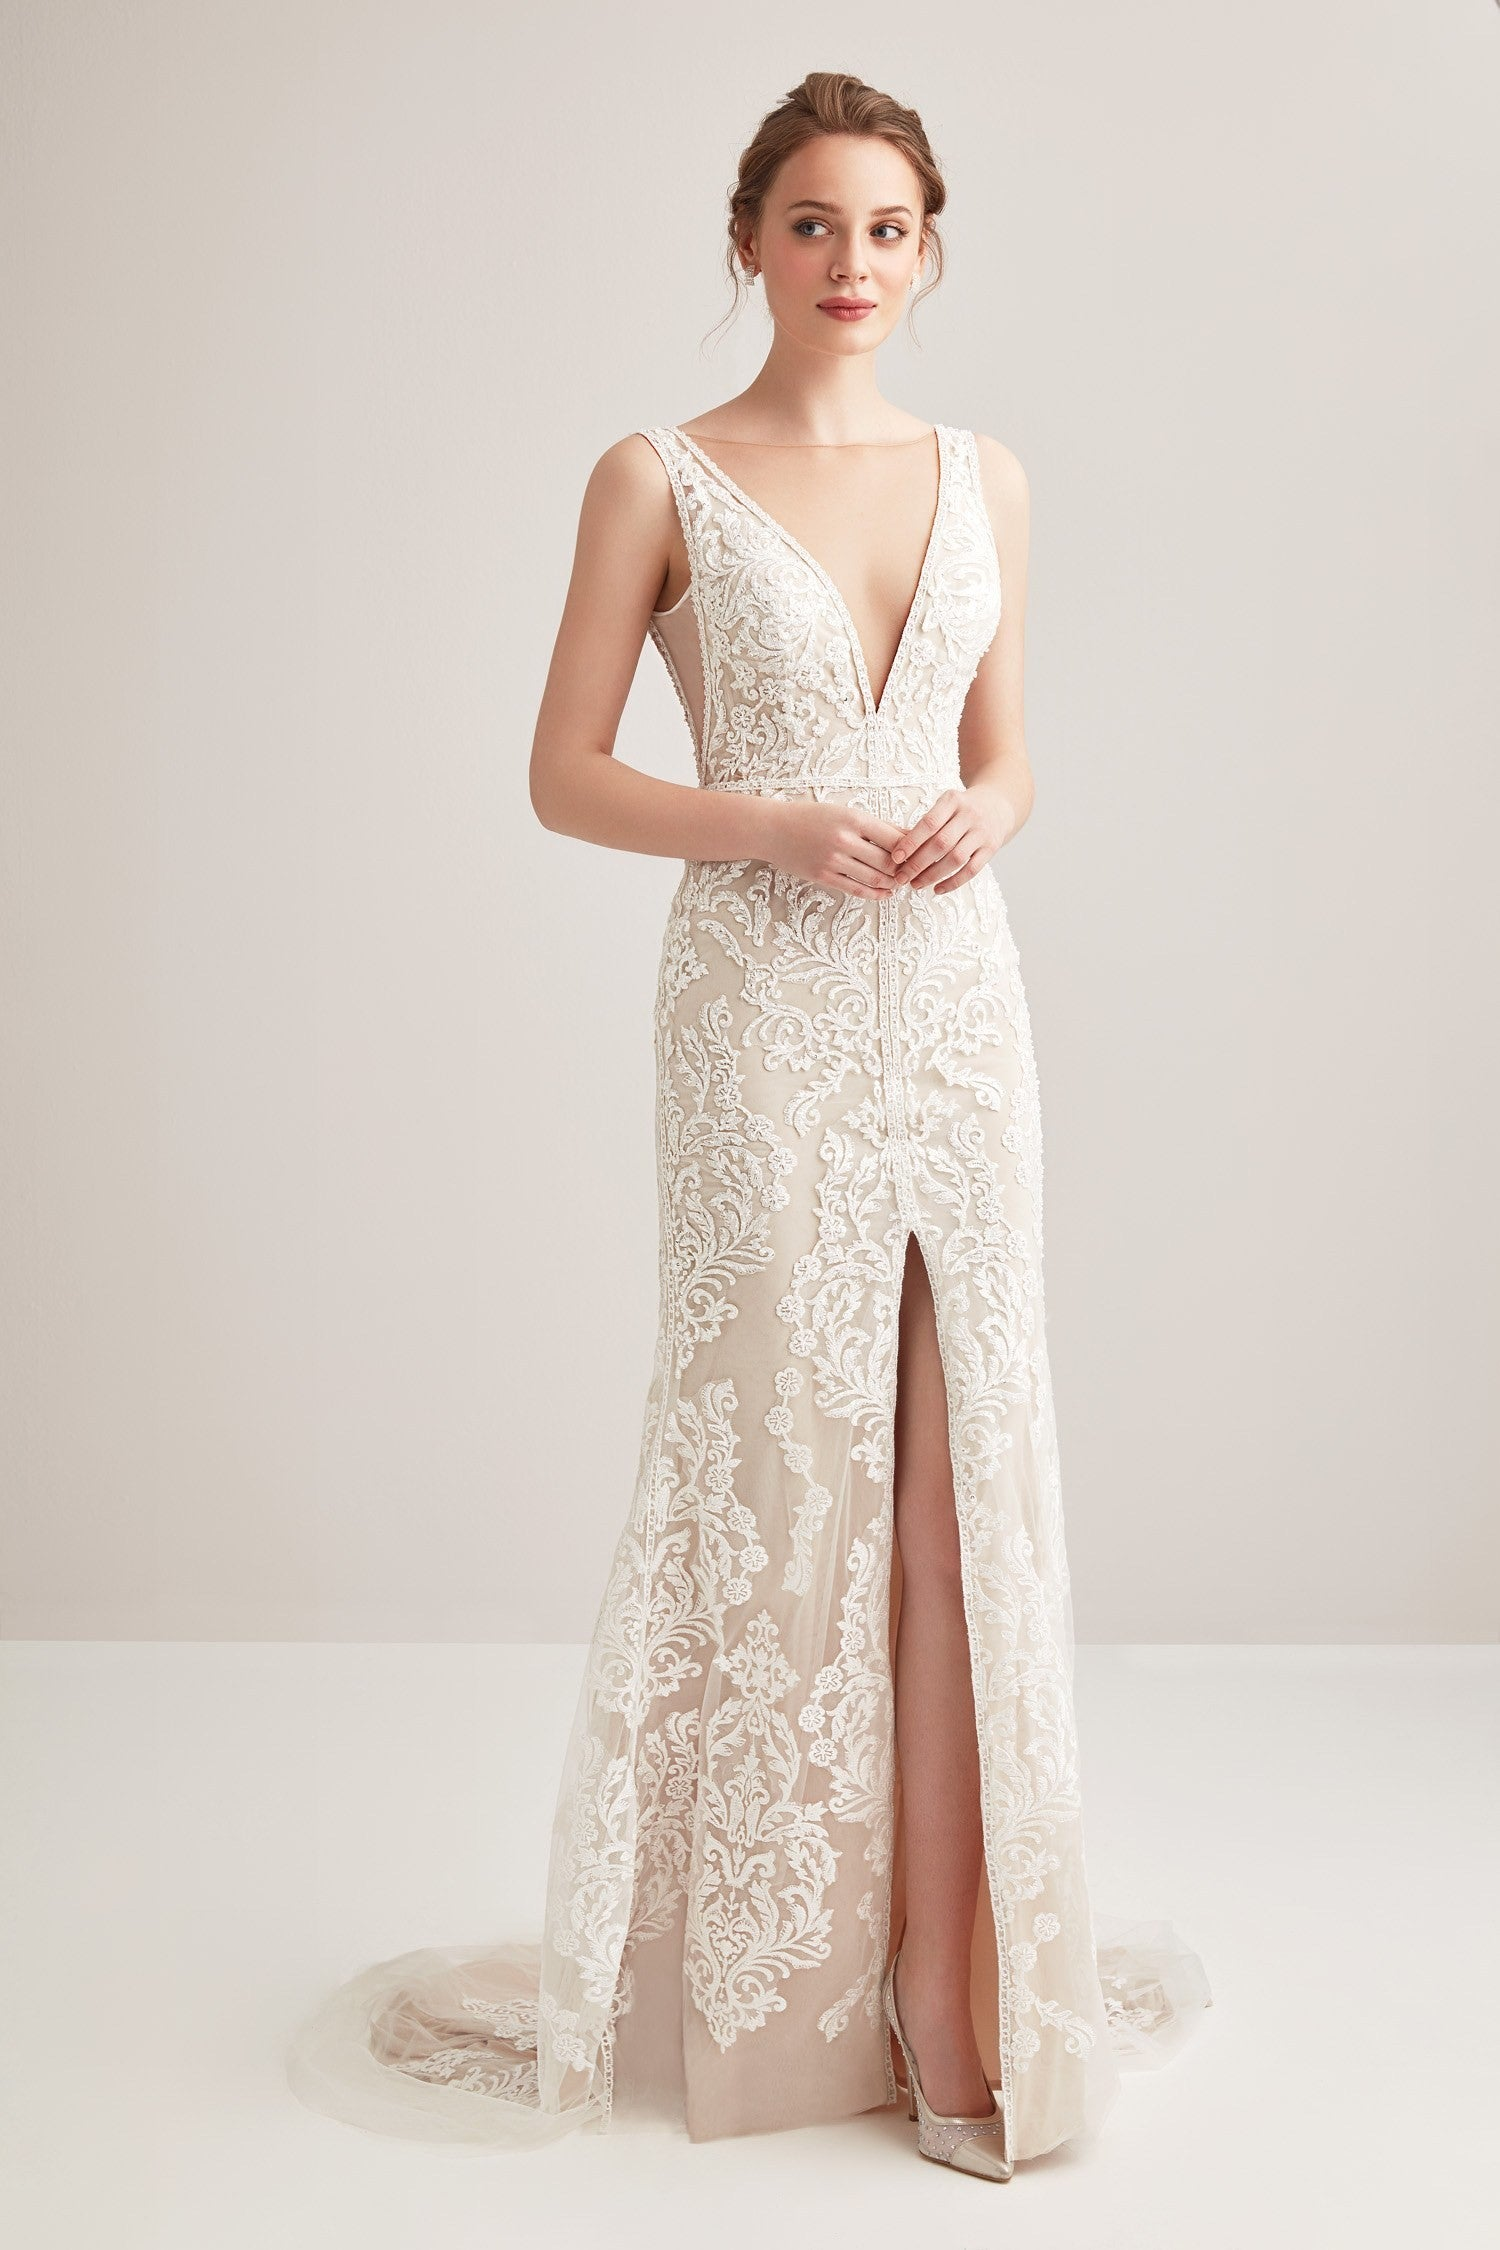 Plunging neckline lace fit & flare ivory and gold gown with split-4xlwpd22512